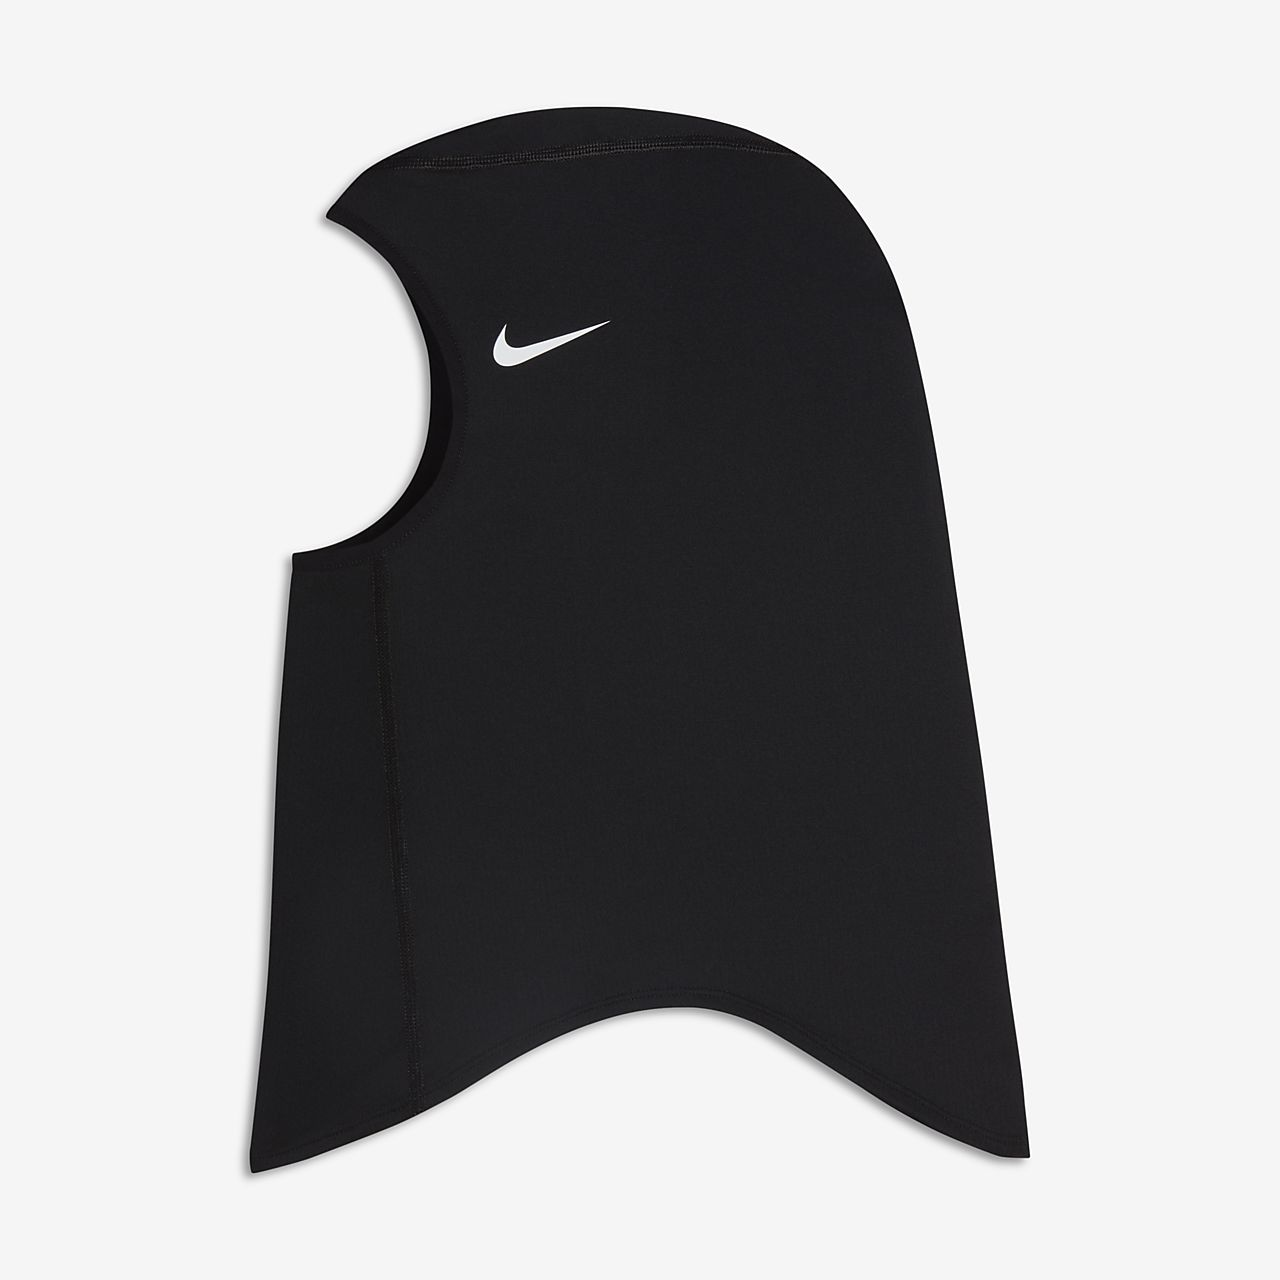 newest collection 2537a 3029b Low Resolution Nike Pro Women s Hijab Nike Pro Women s Hijab